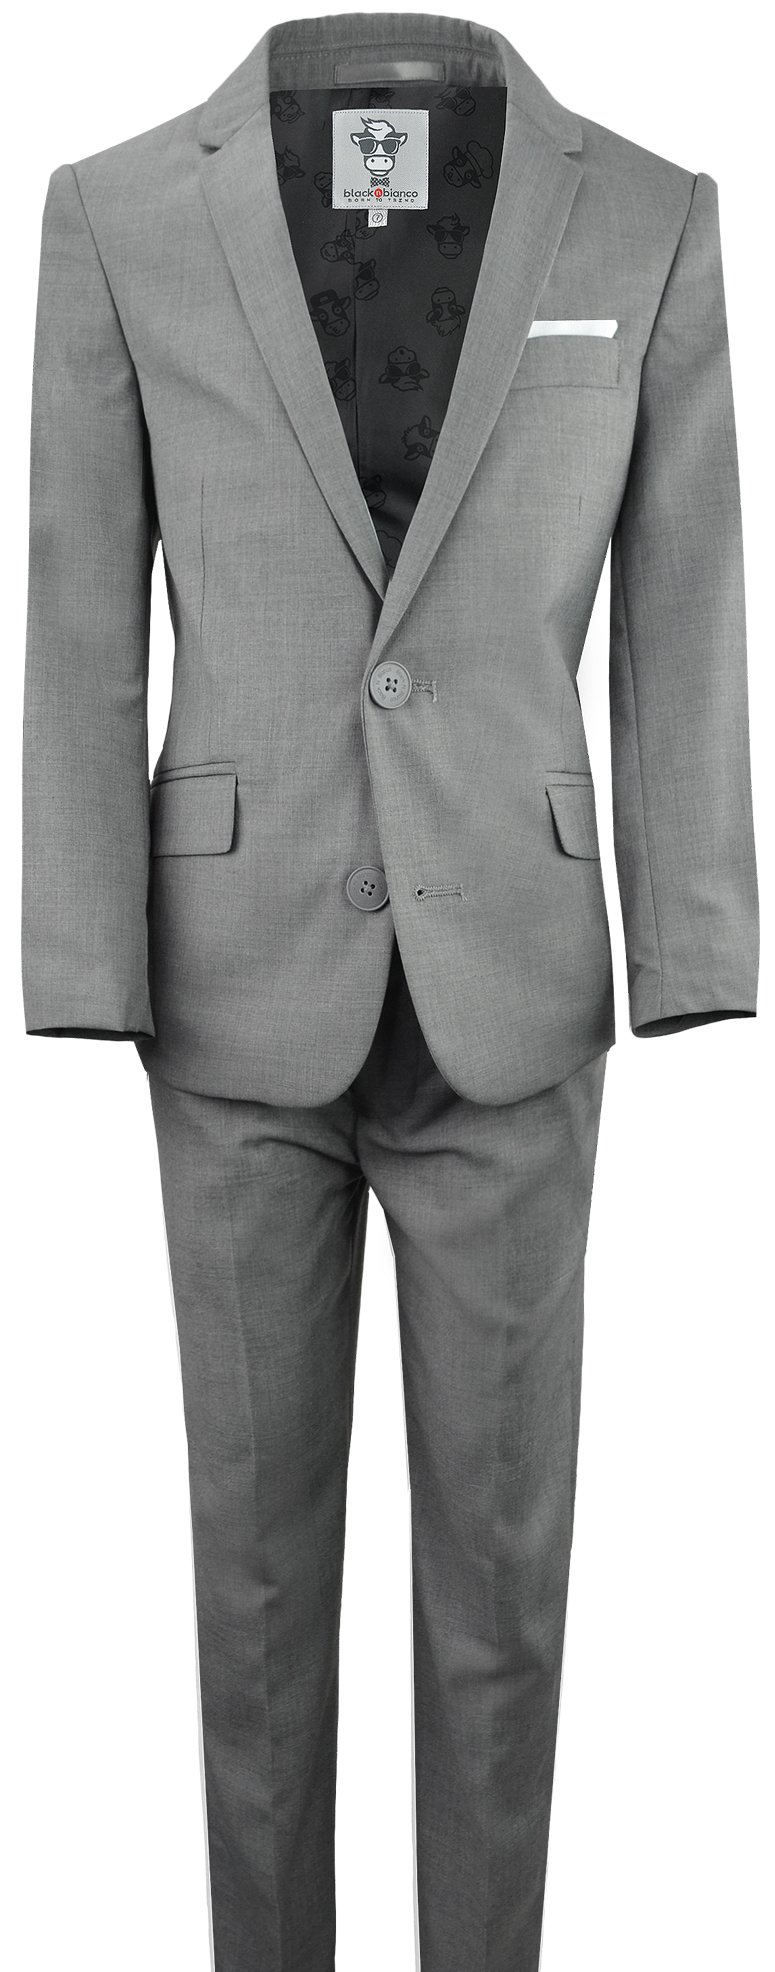 Black n Bianco Boys' First Class Slim Fit Suits Lightweight Style. Presented by Baby Muffin (7, Rustic Gray)